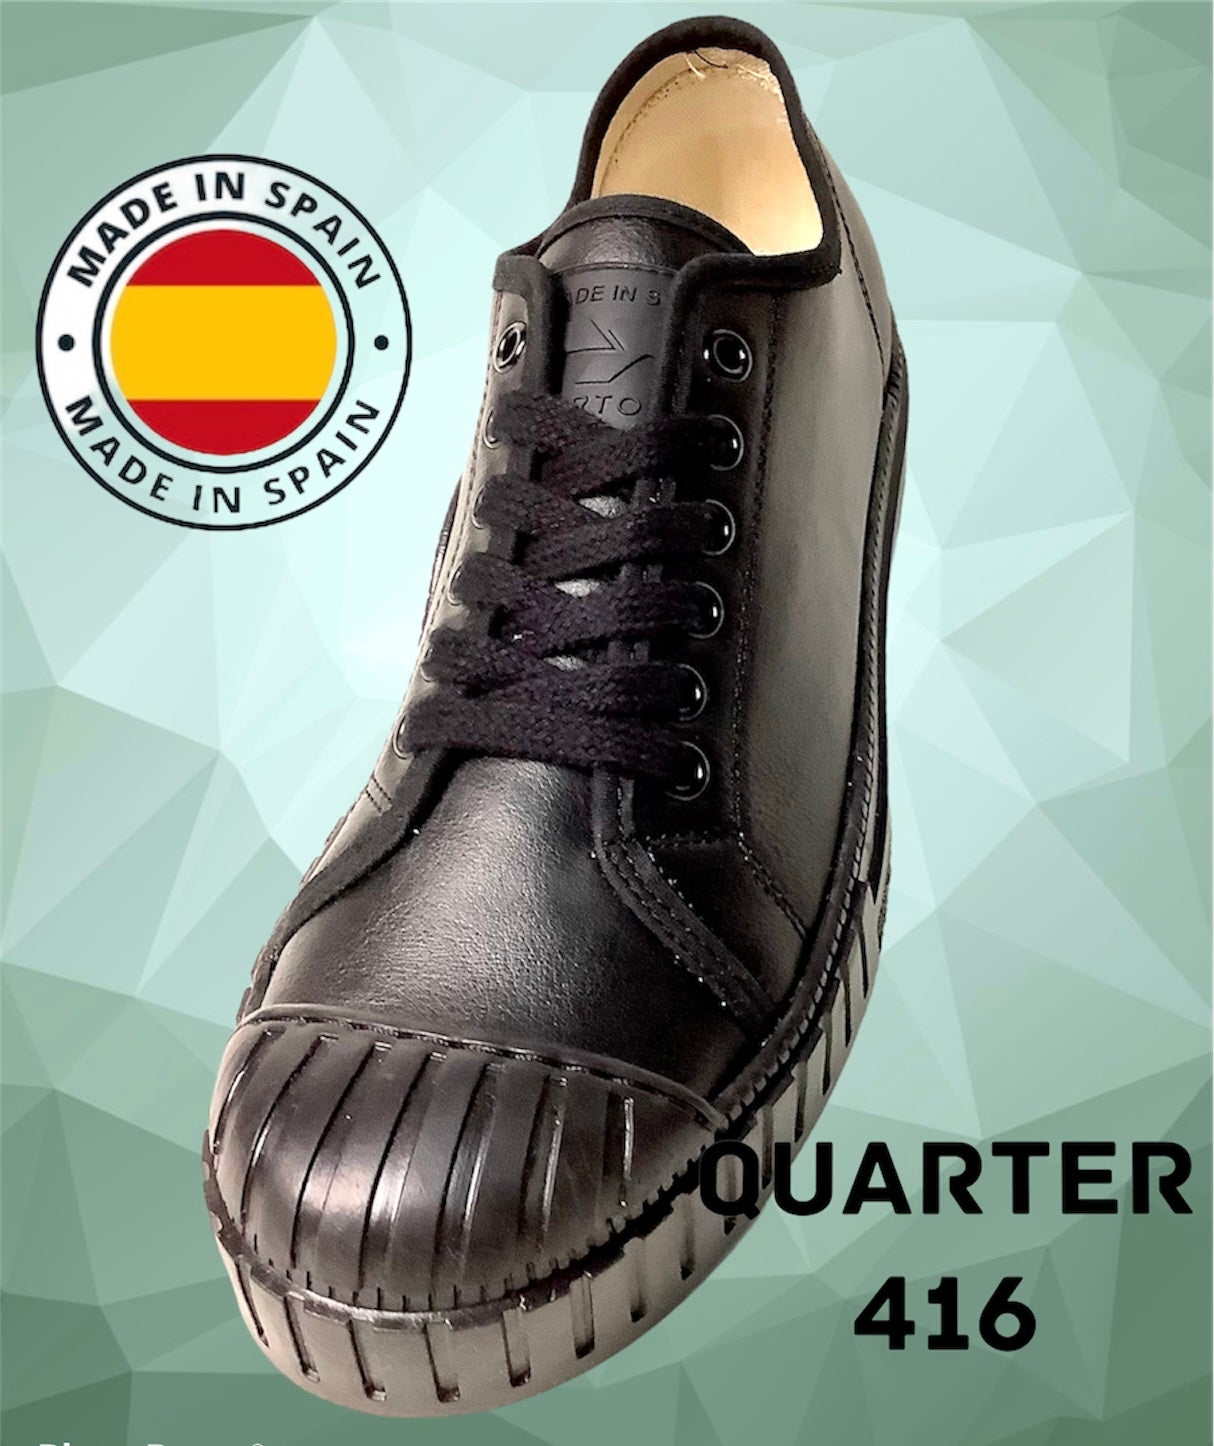 Image of Tortola model 10 leather sneaker shoes made in Spain